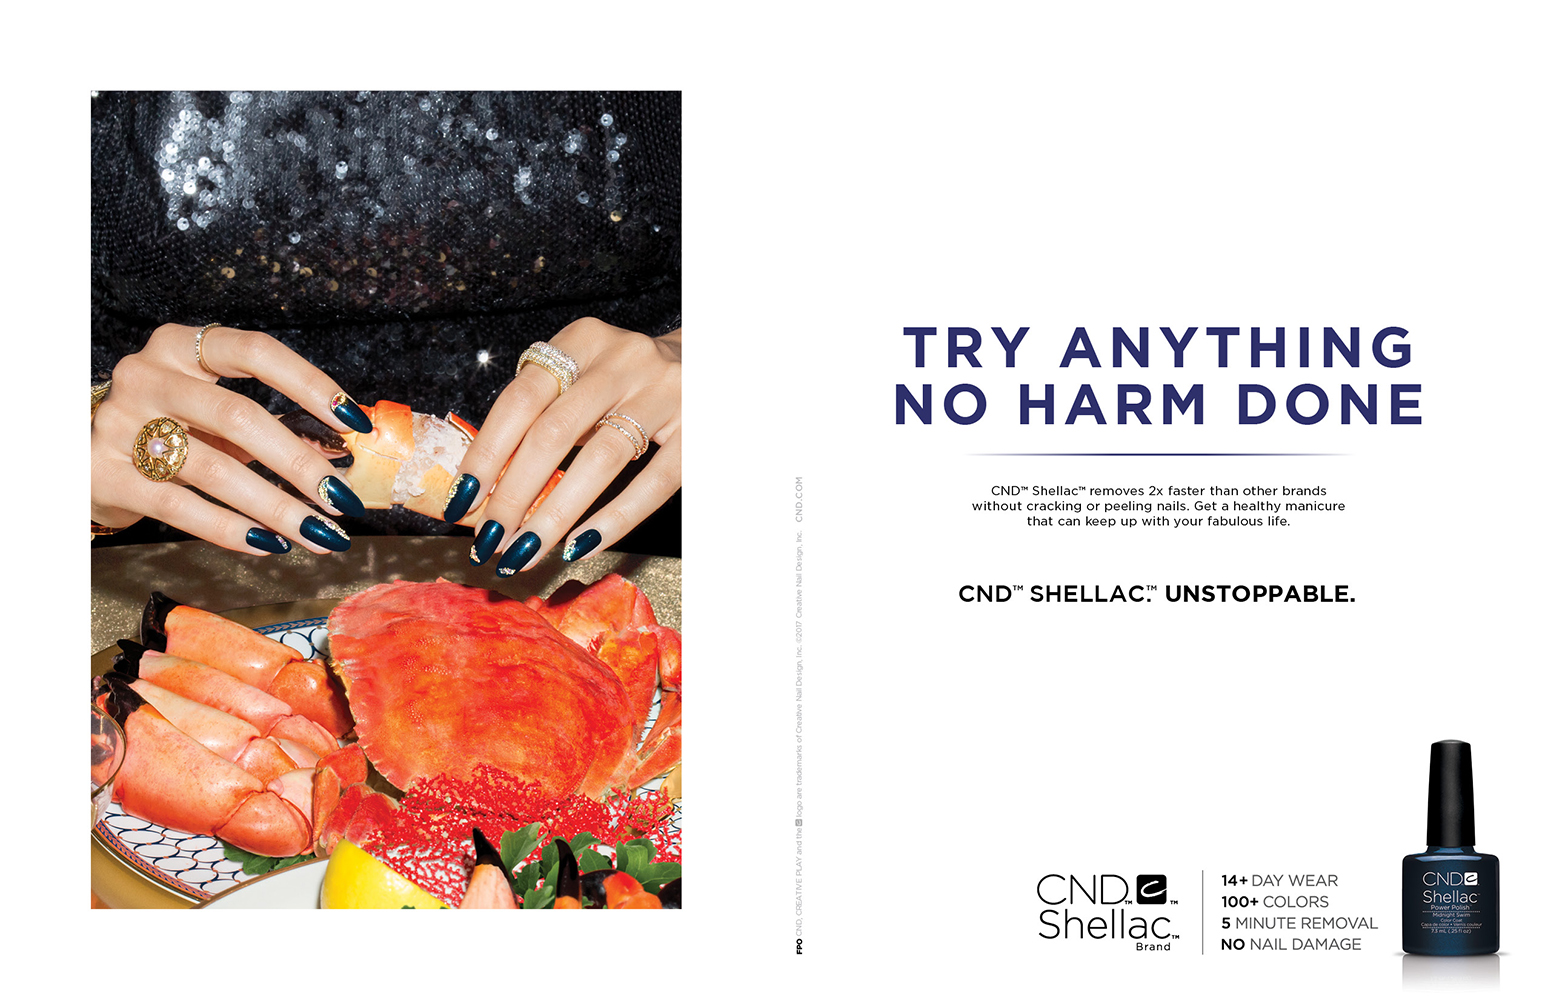 CND_Shellac_Double_Spread_Print_CRAB.jpg